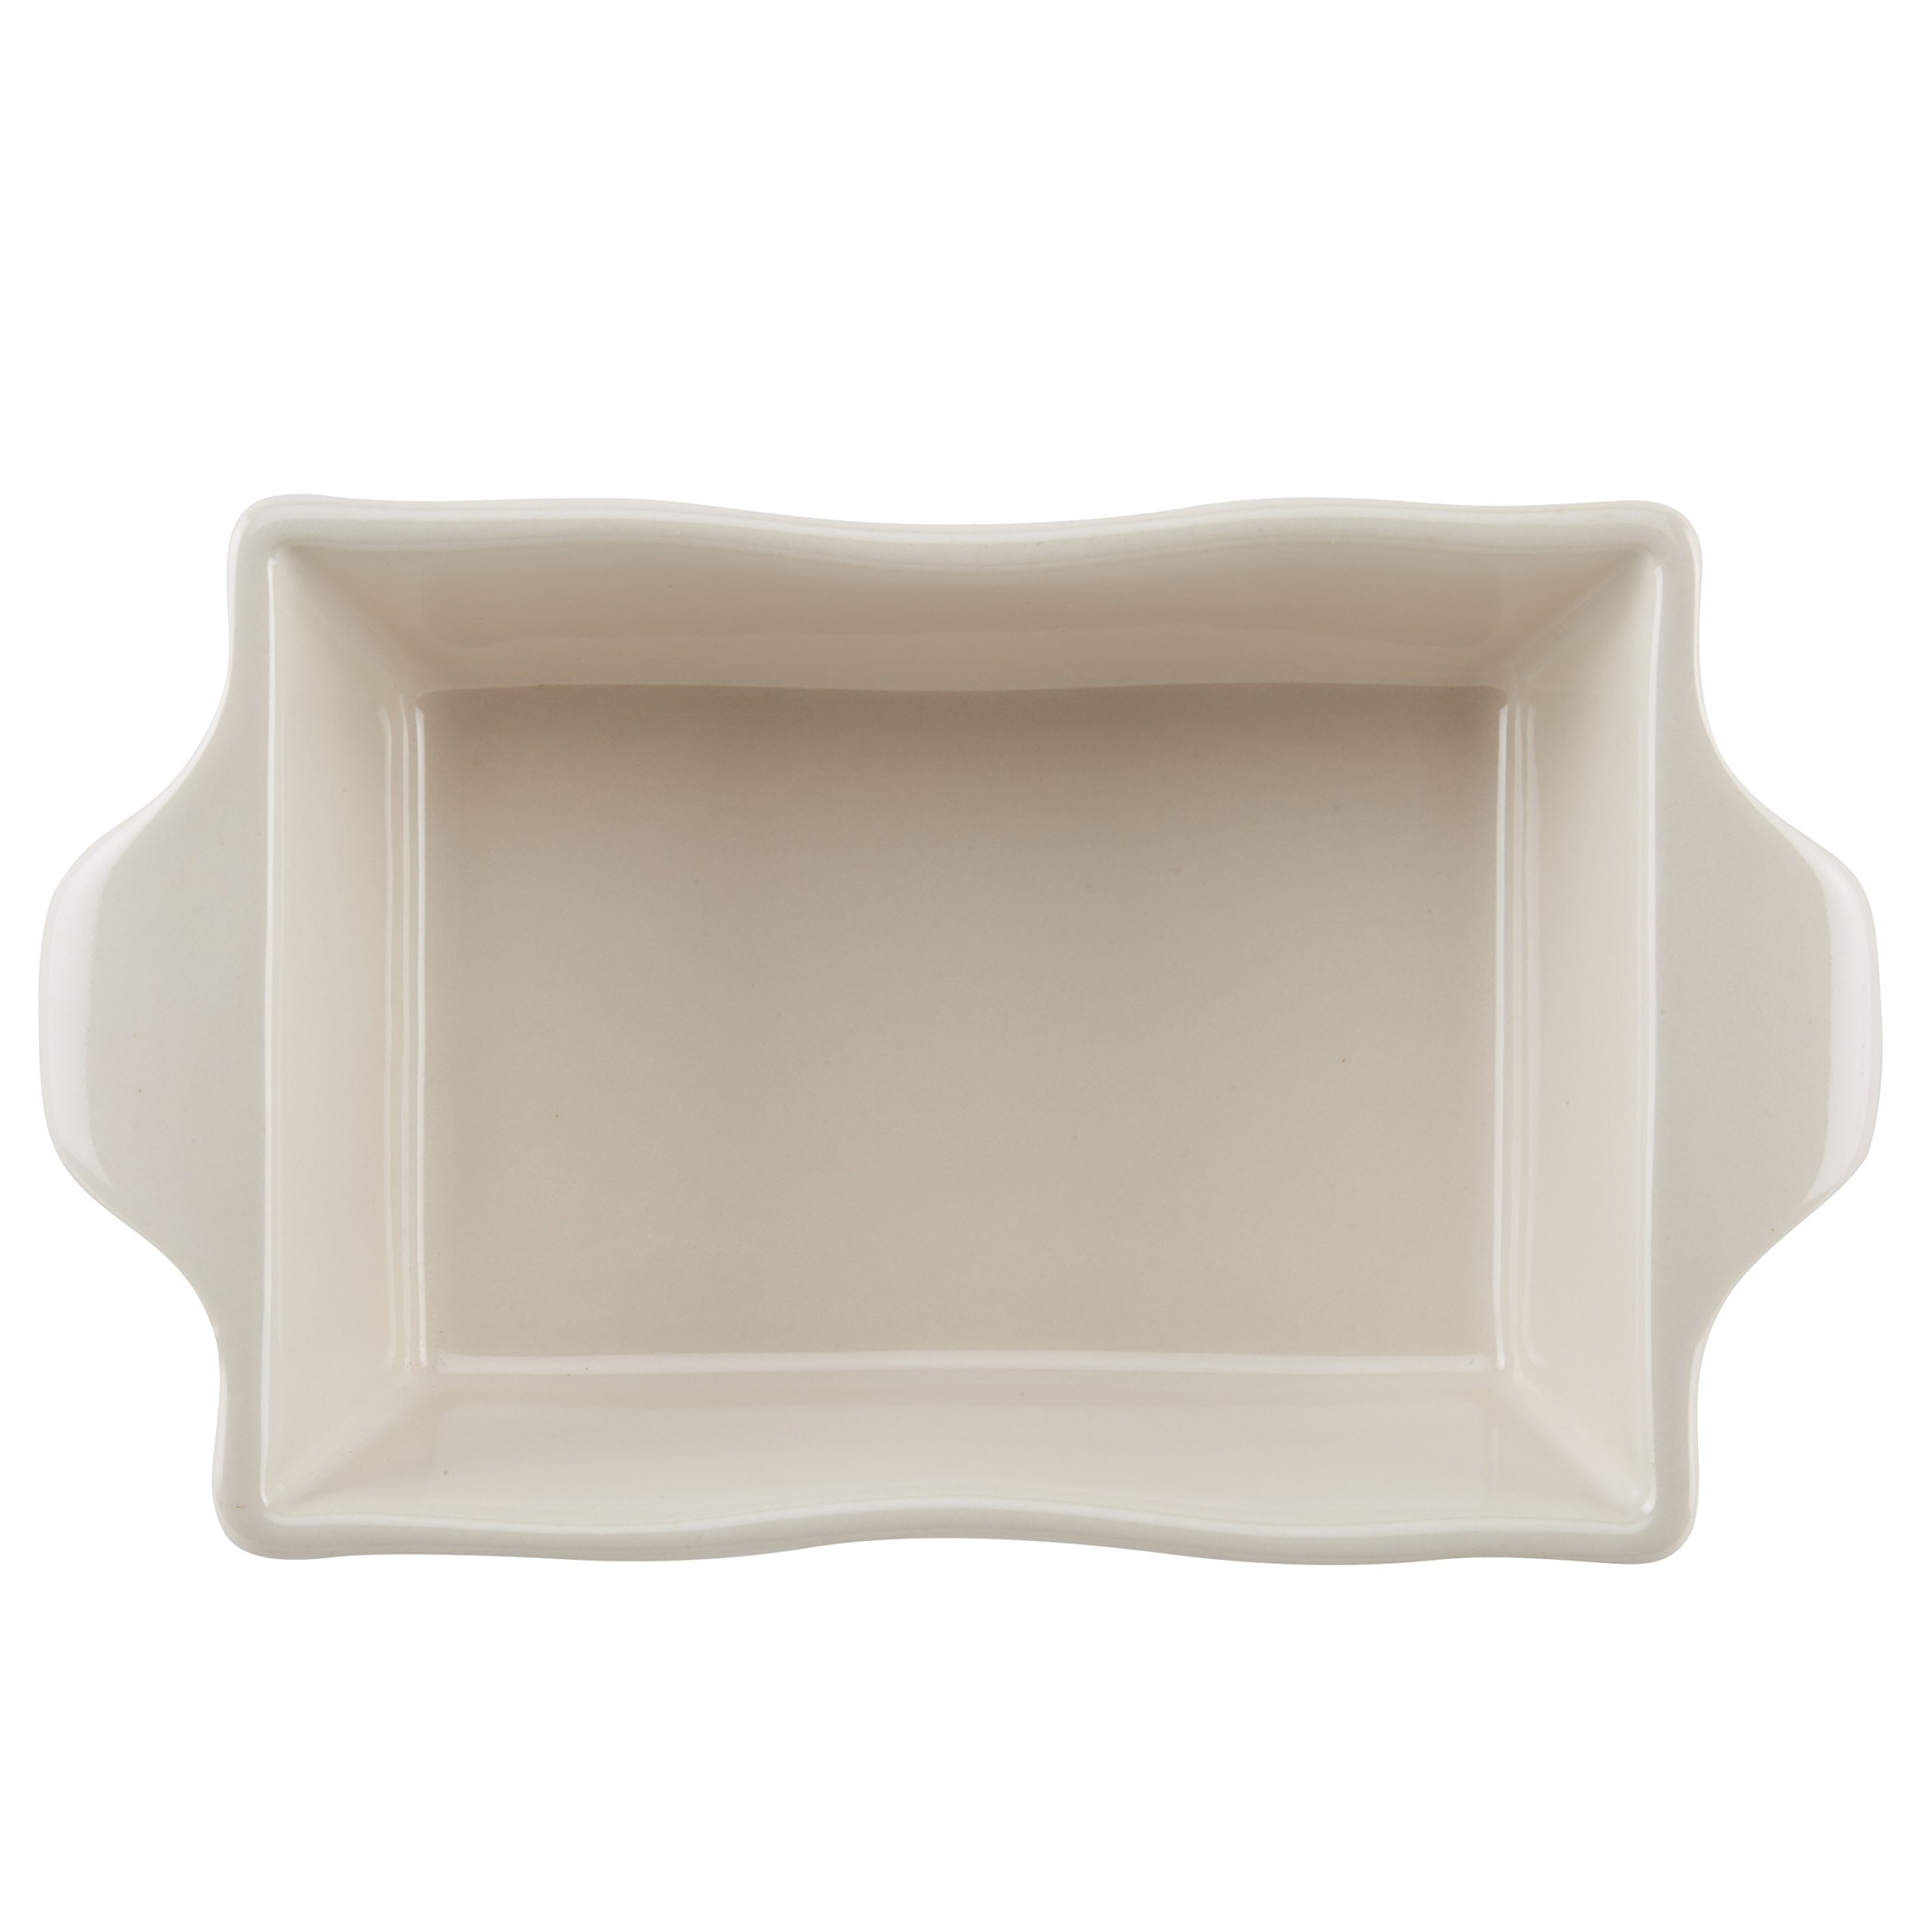 Ayesha Curry Home Collection Stoneware Au Gratin Set, 12-Ounce, Cream, 2-Piece by Ayesha Curry (Image #2)